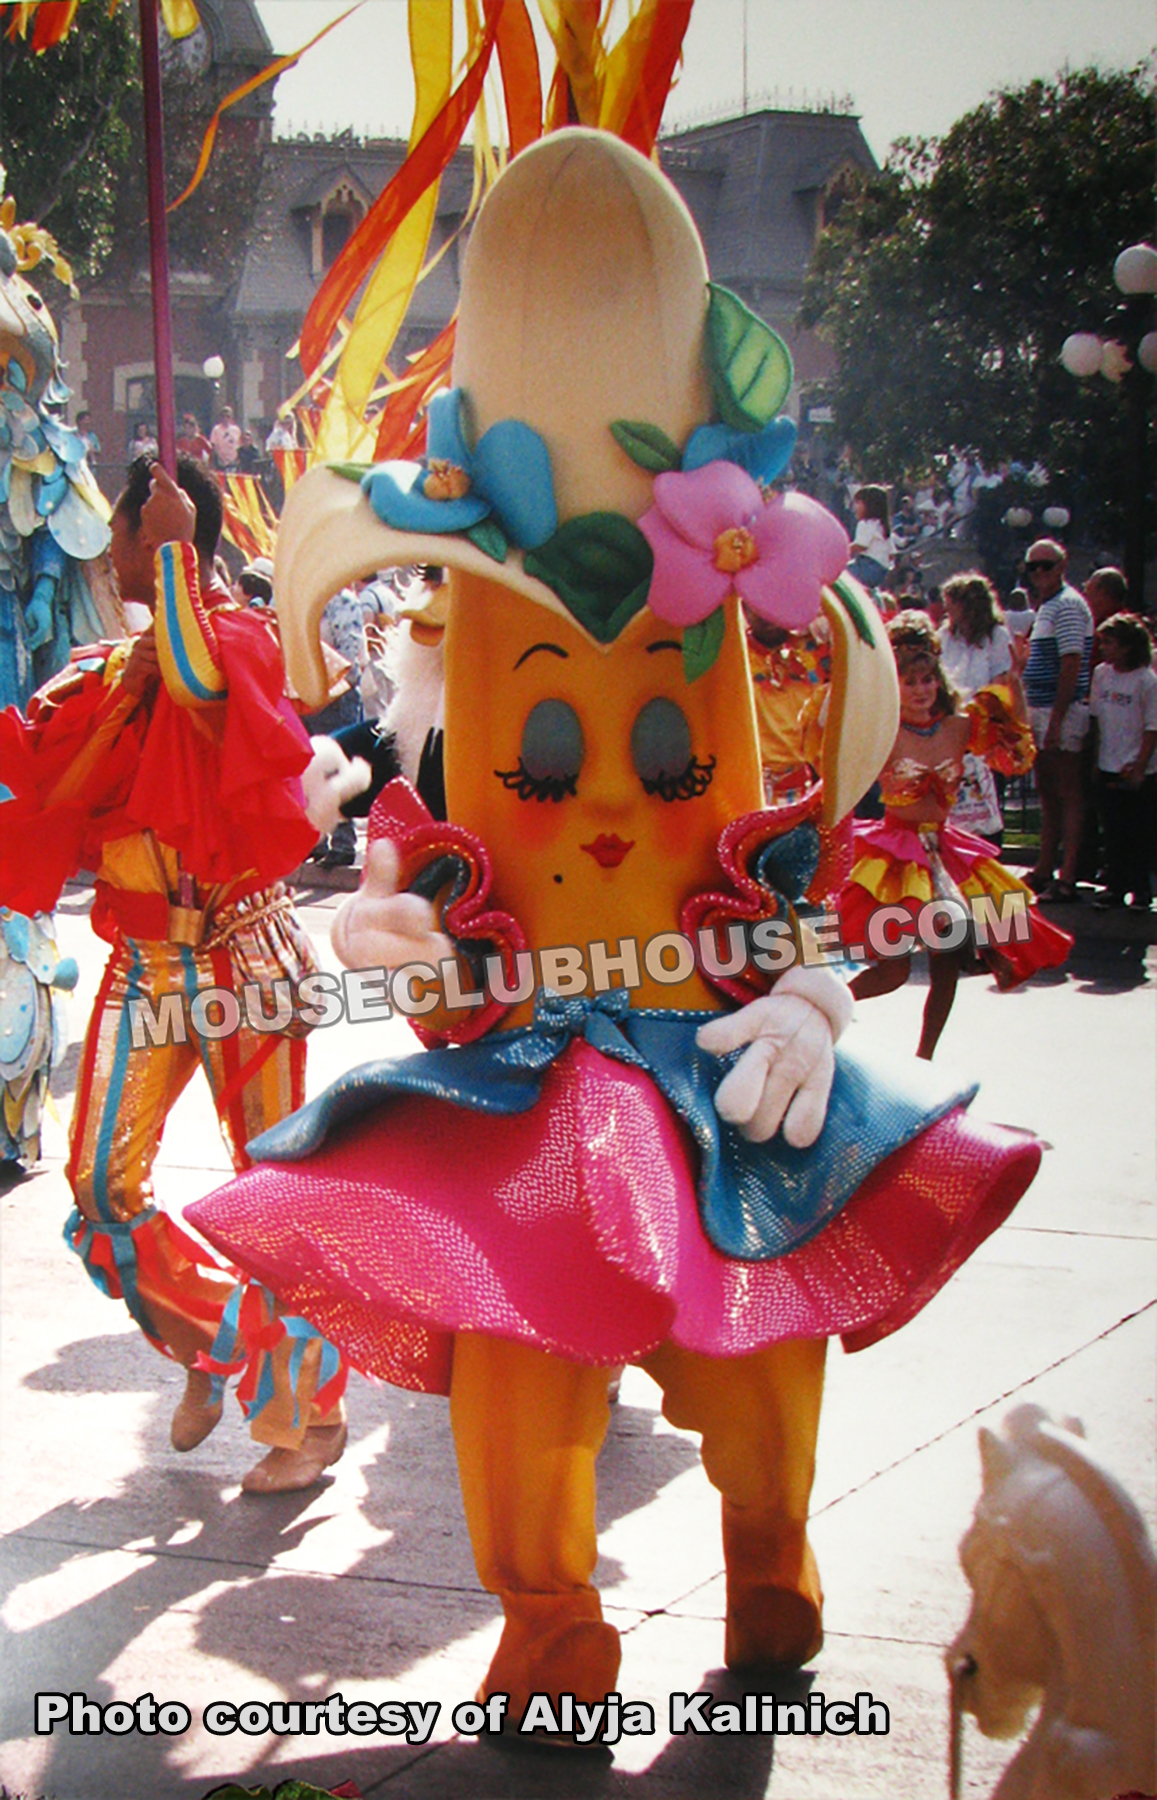 One of Alyjau0027s costumes for the Party Gras parade in Disneyland & Interview: Alyja Kalinich (Costume designer for Disney parks ...